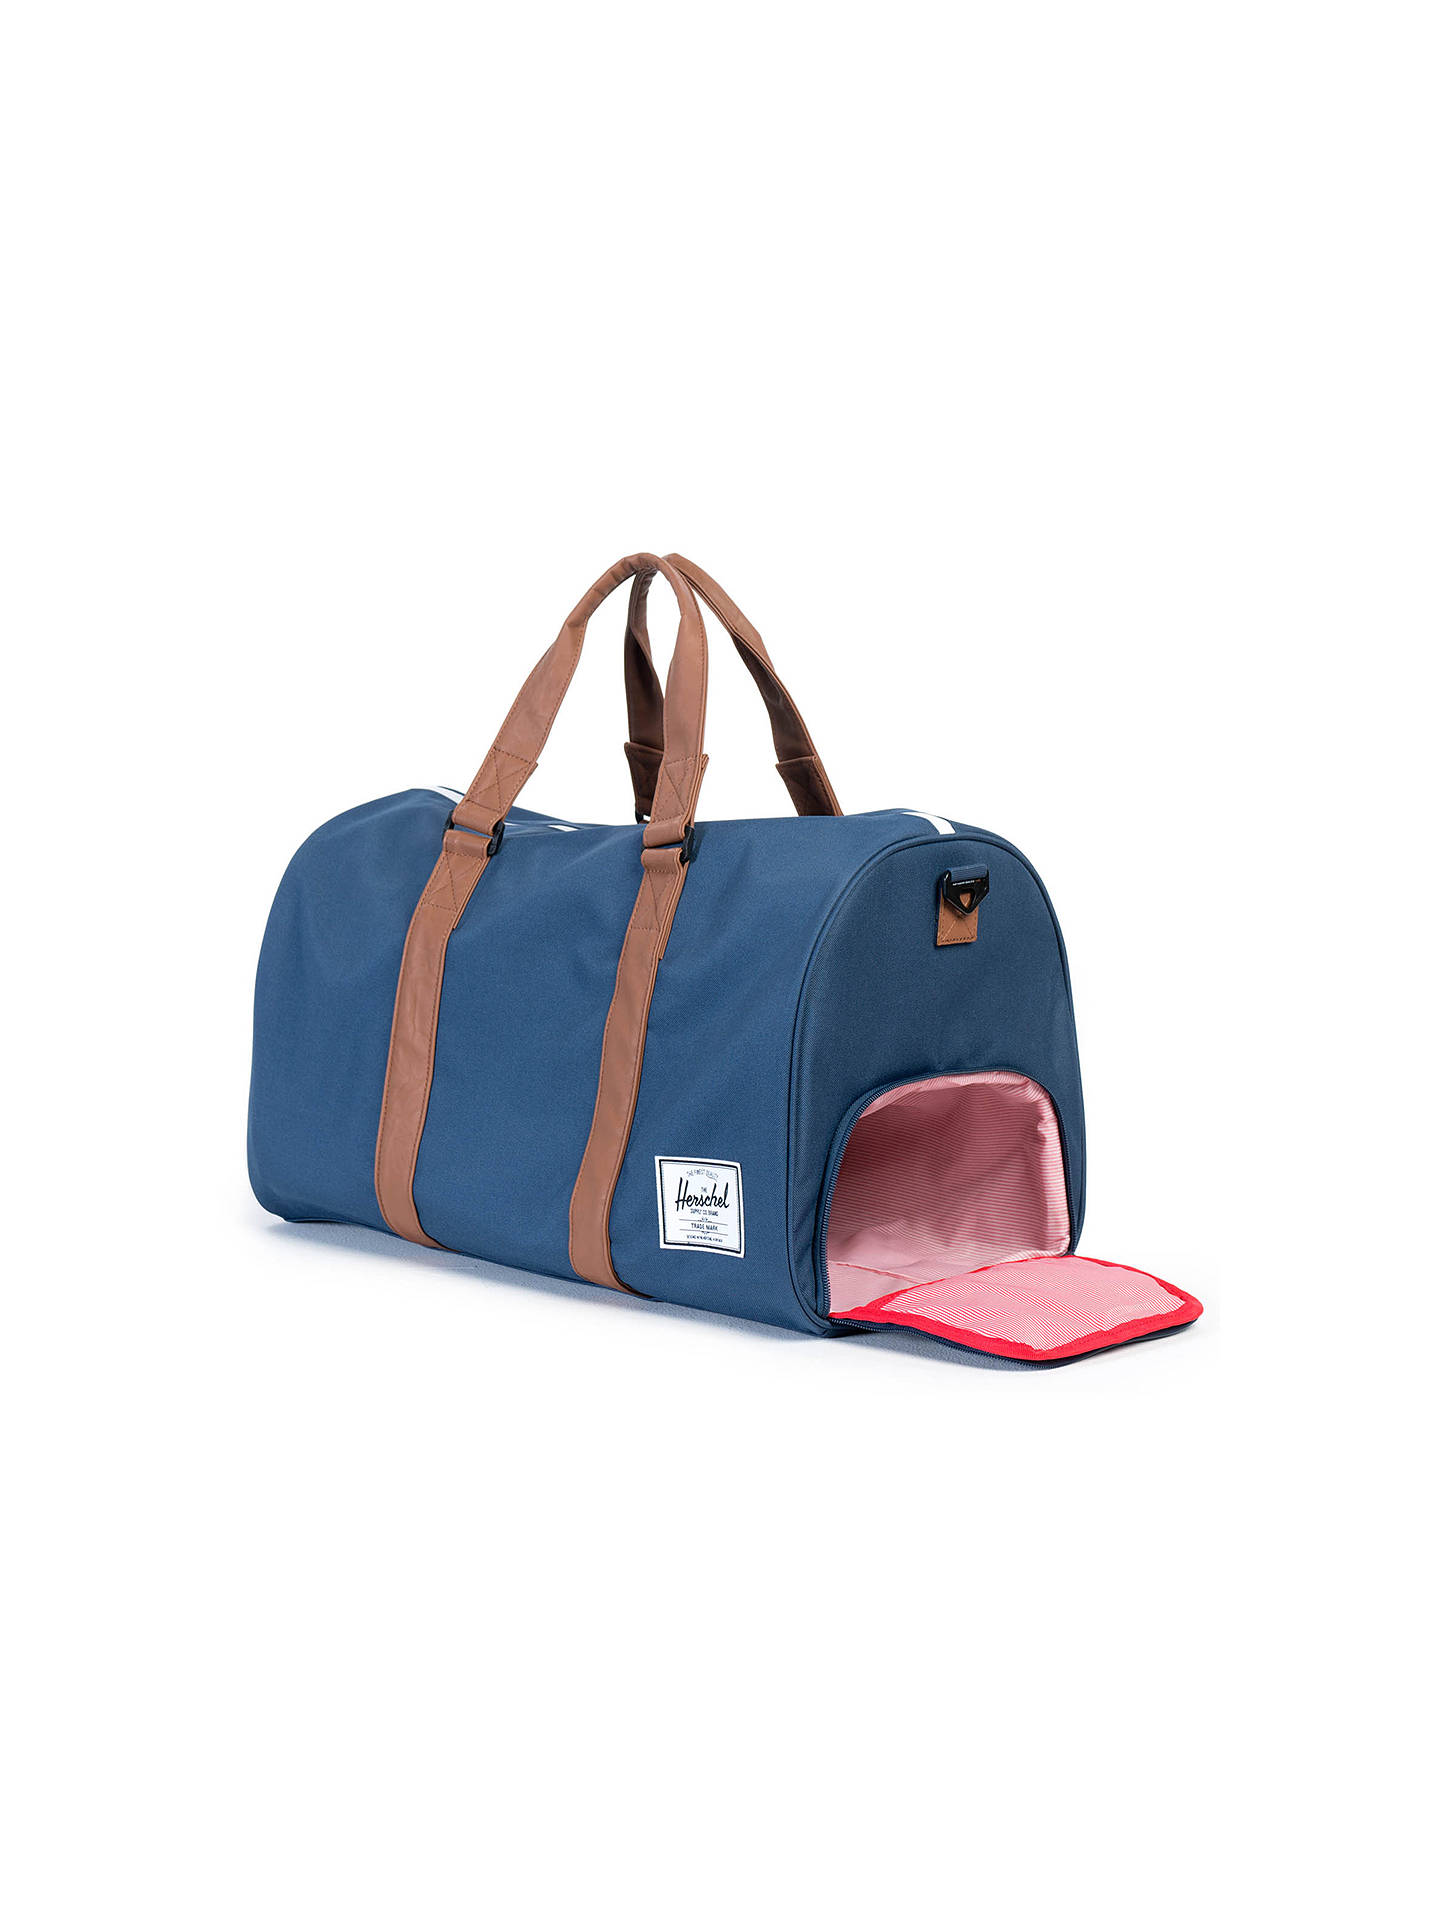 eabdd4b62 Buy Herschel Supply Co. Novel Holdall, Navy/Tan Online at johnlewis.com ...